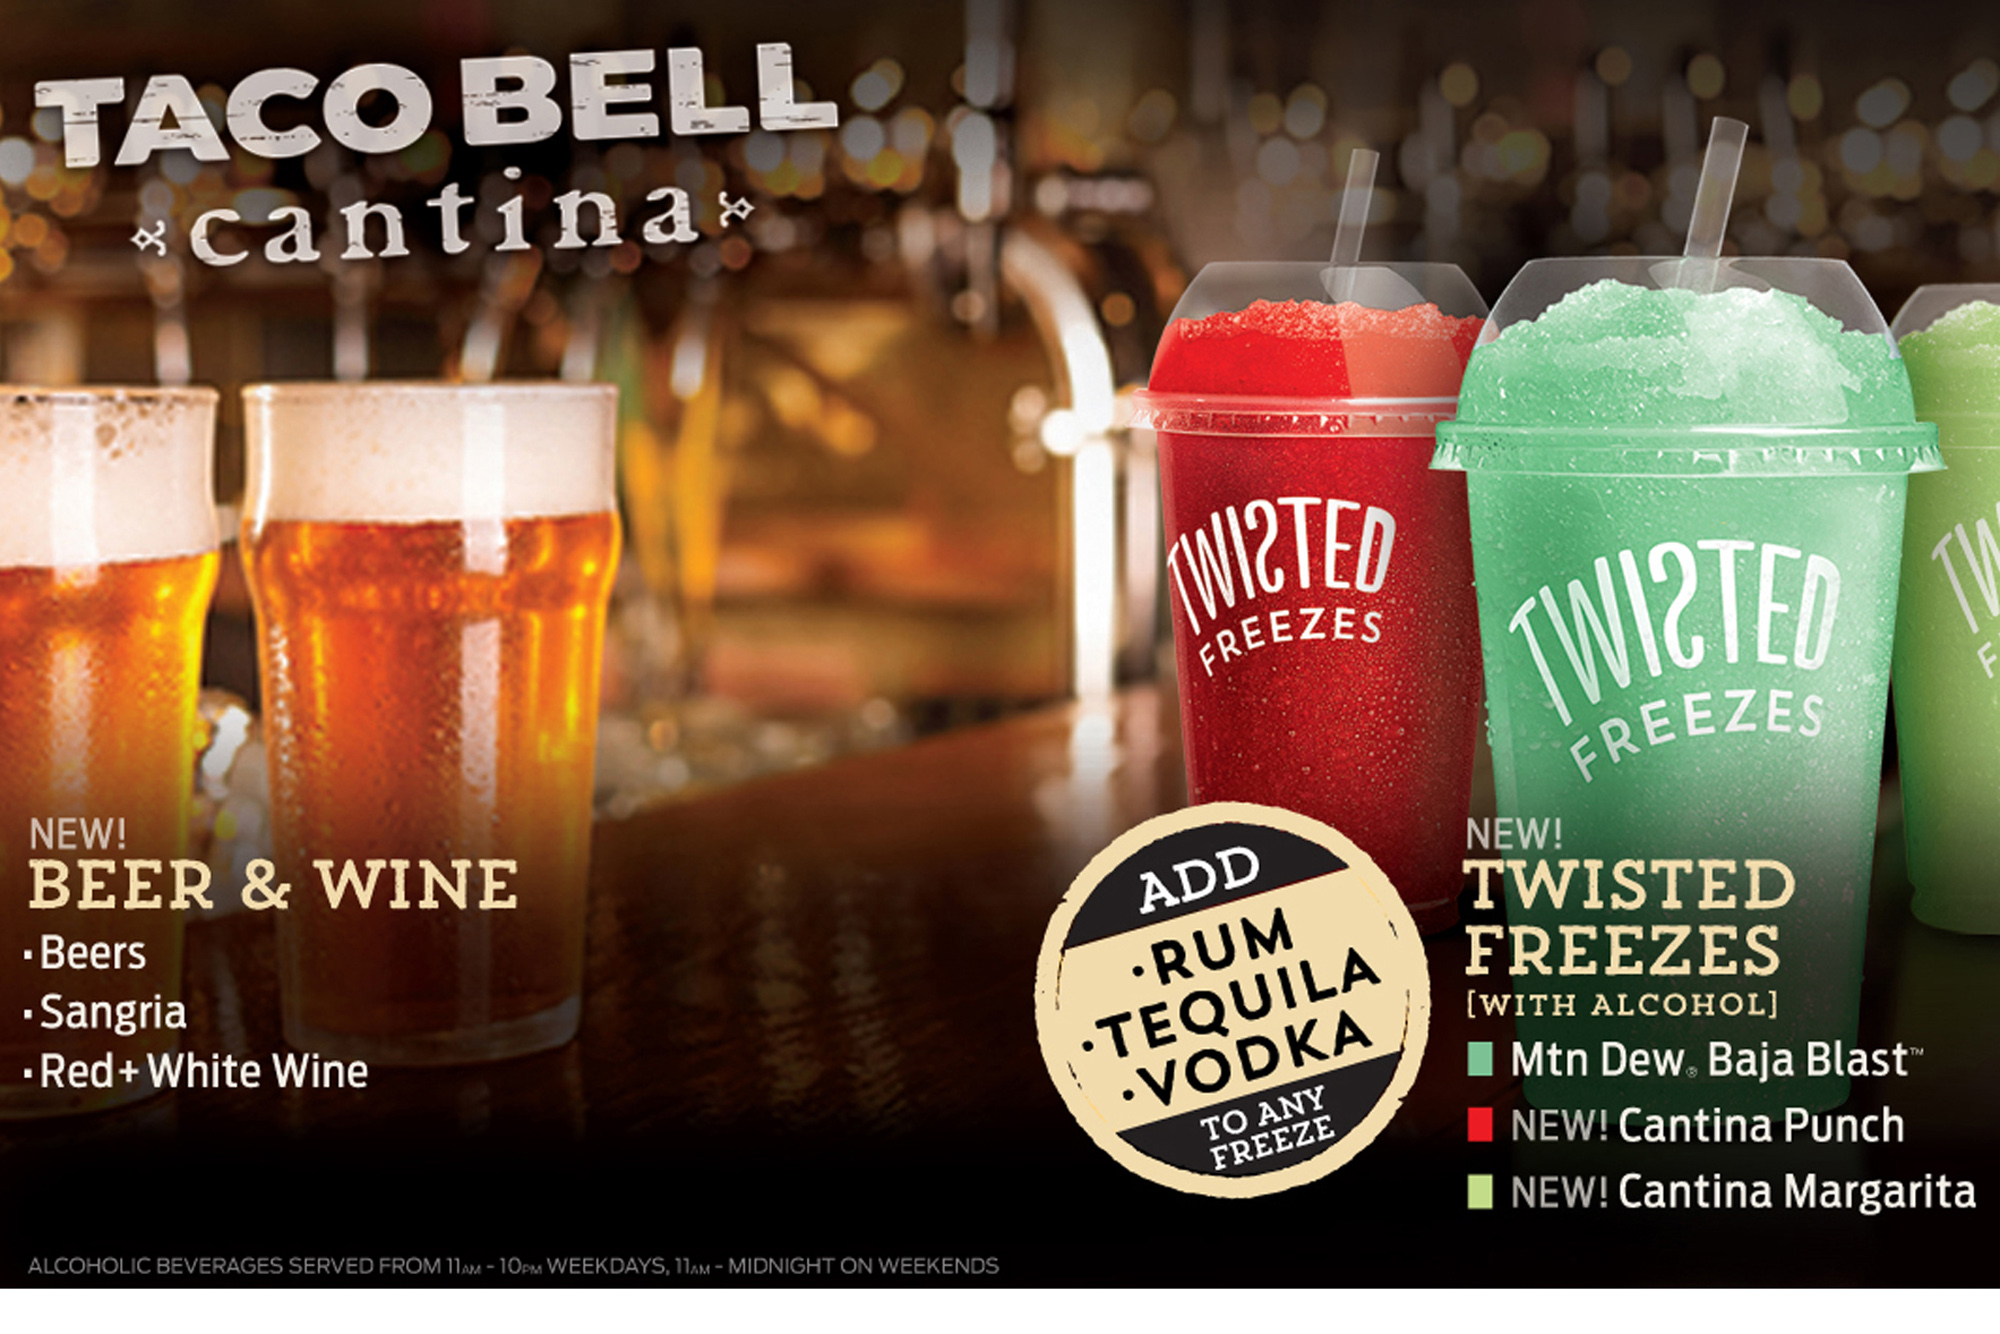 Taco Bell's New Cantina Restaurants Will Serve Up Booze, Tapas